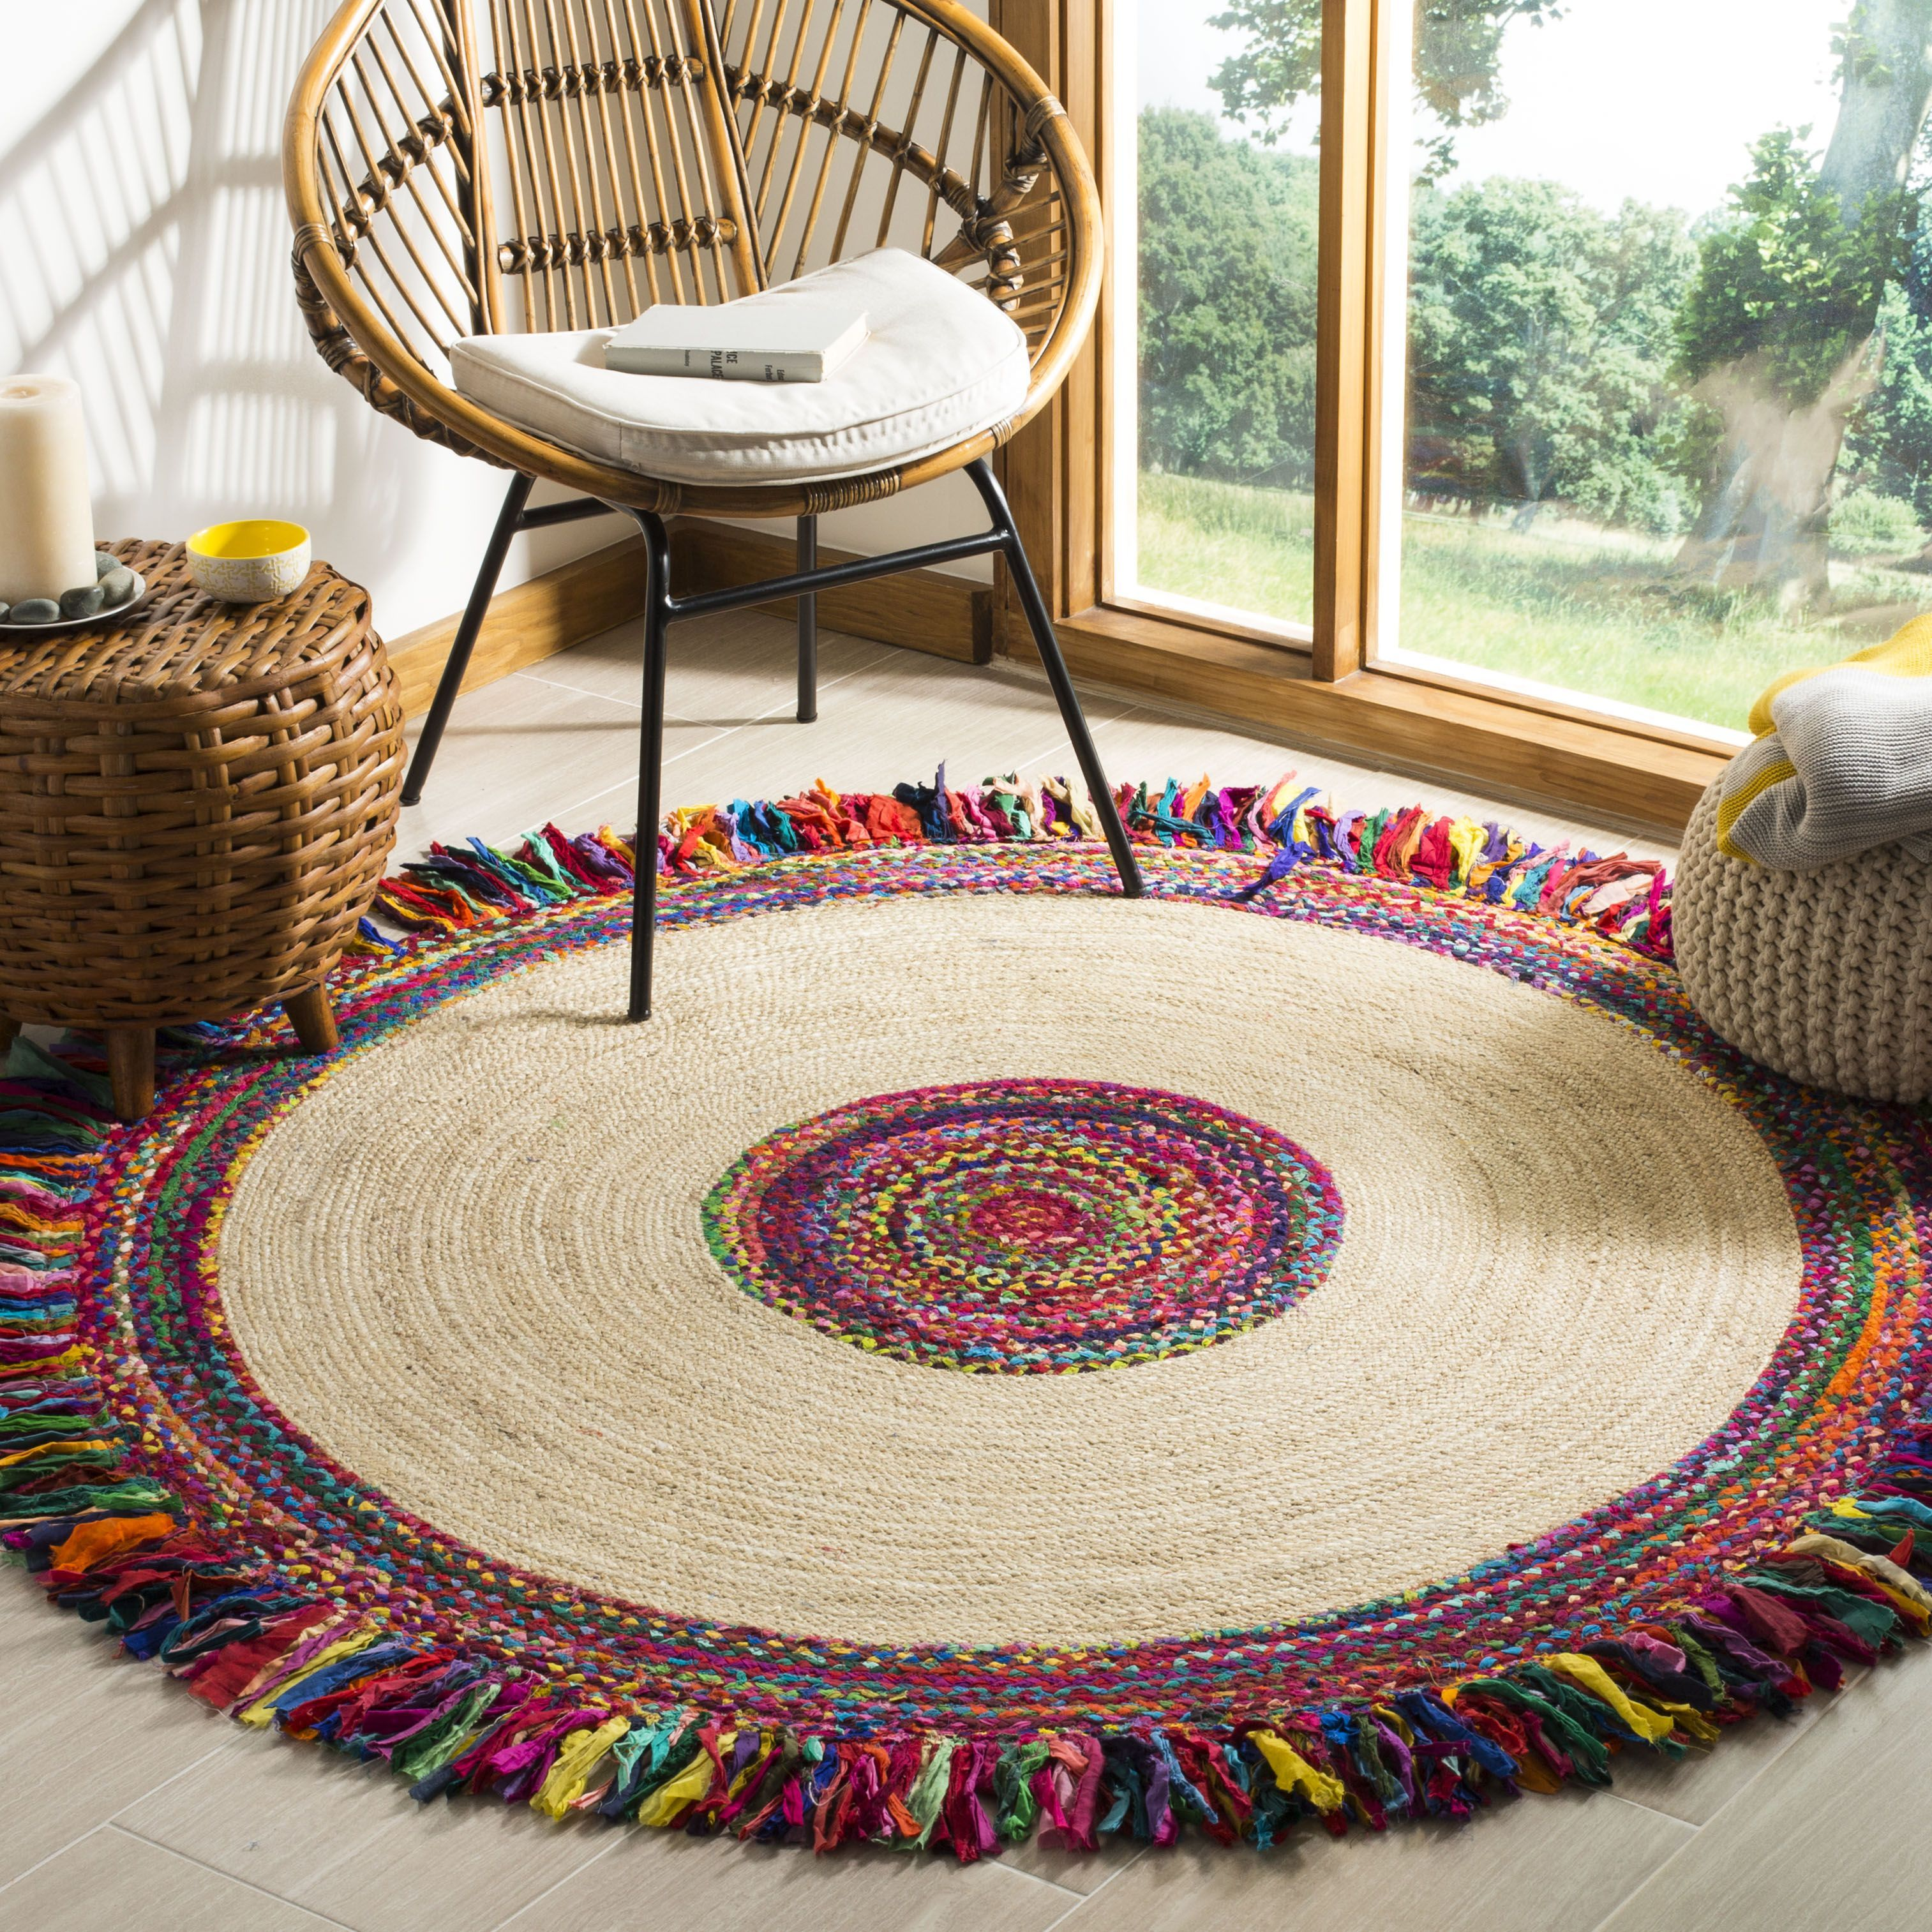 Furniture Design Coffee Tables Design Rugs Area Rugs Rugs In 2020